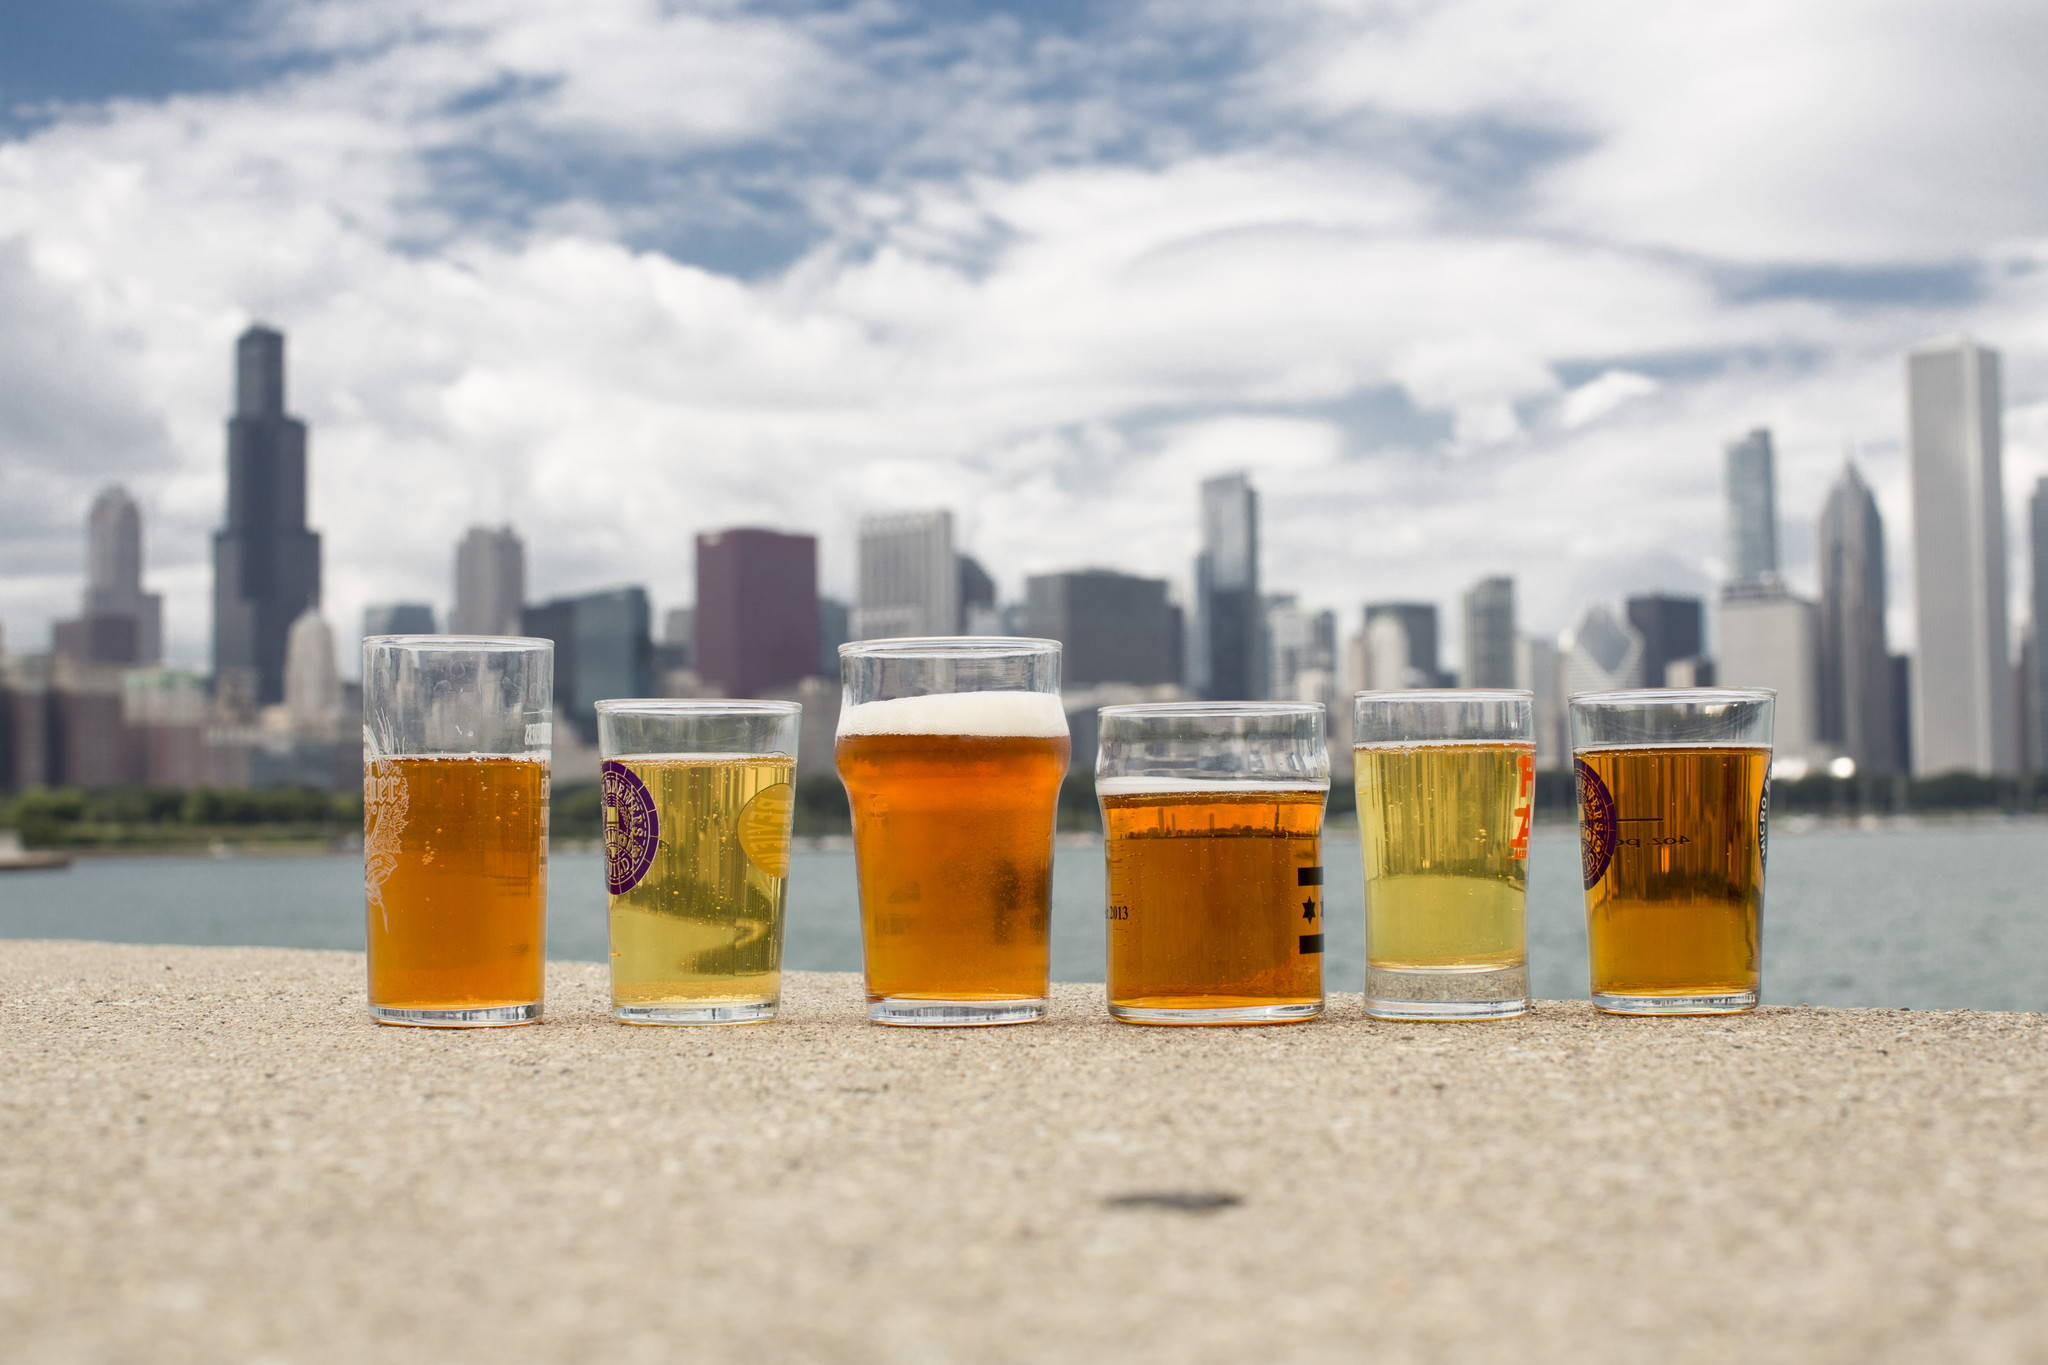 Chicago Guide to Craft Beer and 420 Culture by DopeBoo online headshop